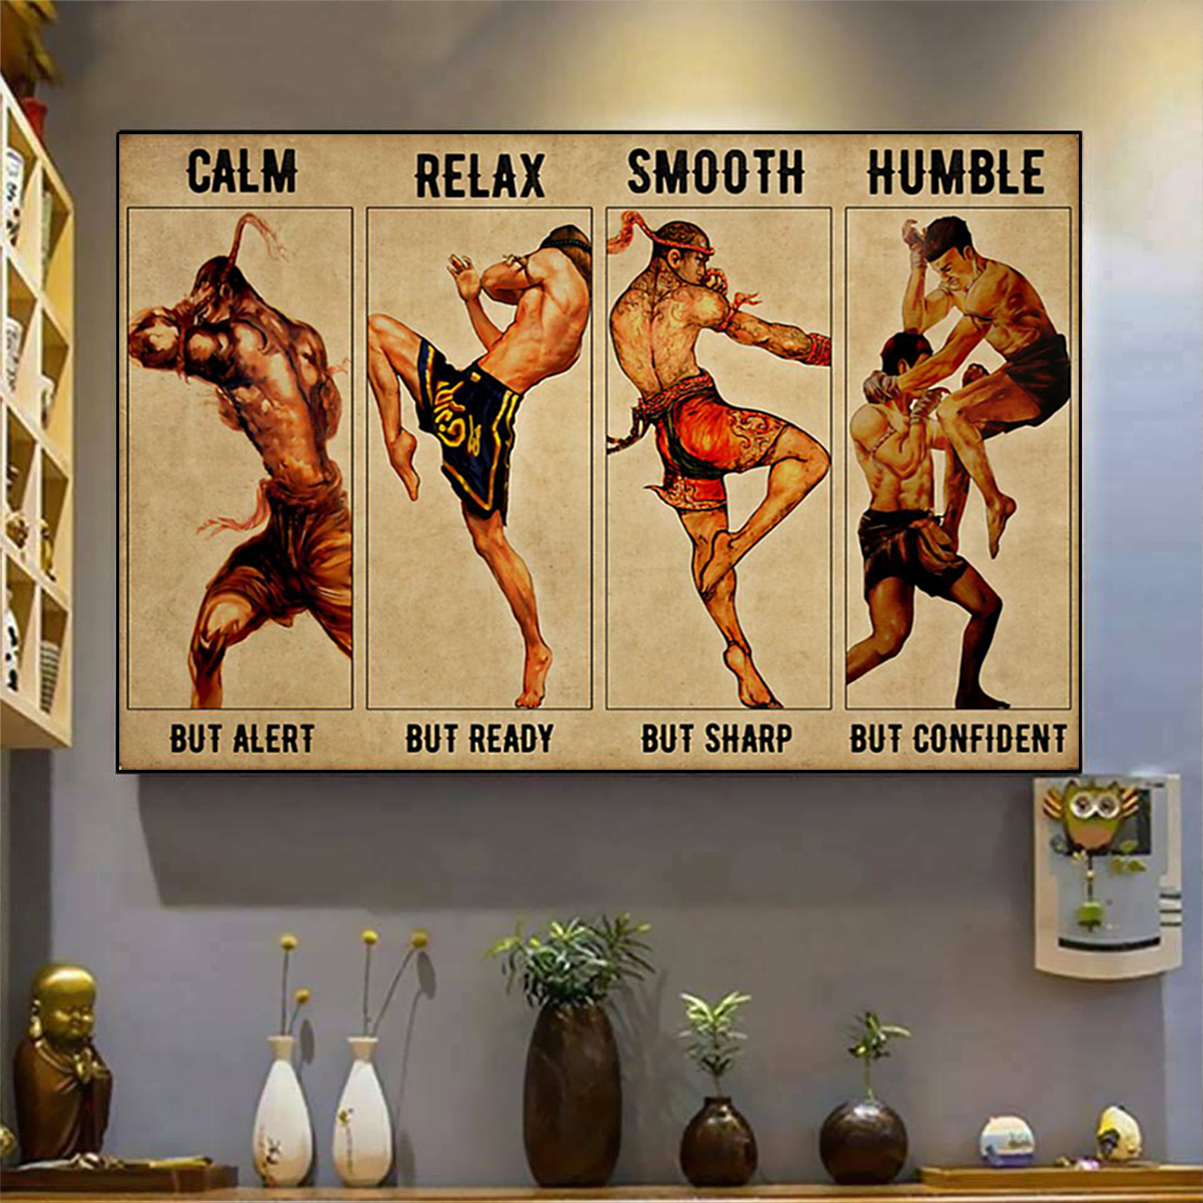 Muay thai calm relax smooth humble poster A1